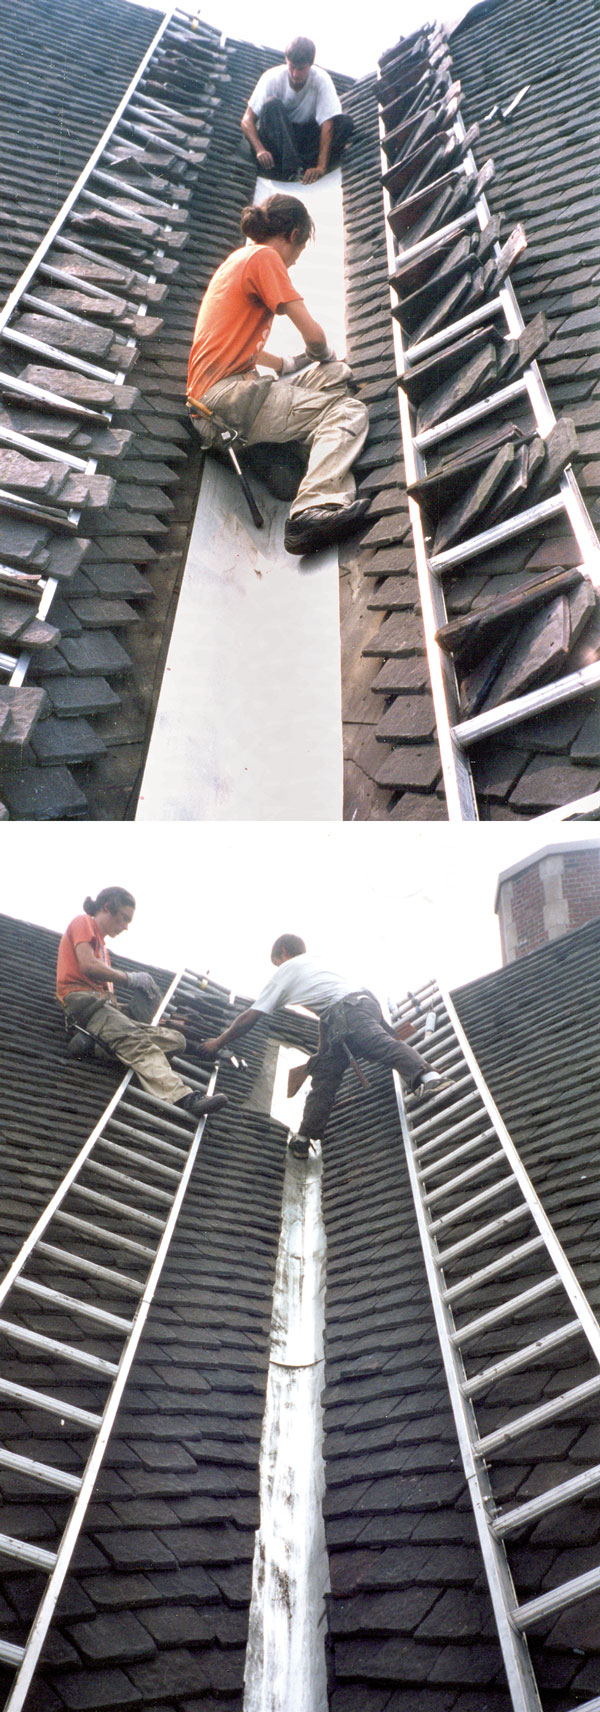 How to repair a ceramic tile roof how to repair a ceramic tile roof dailygadgetfo Images